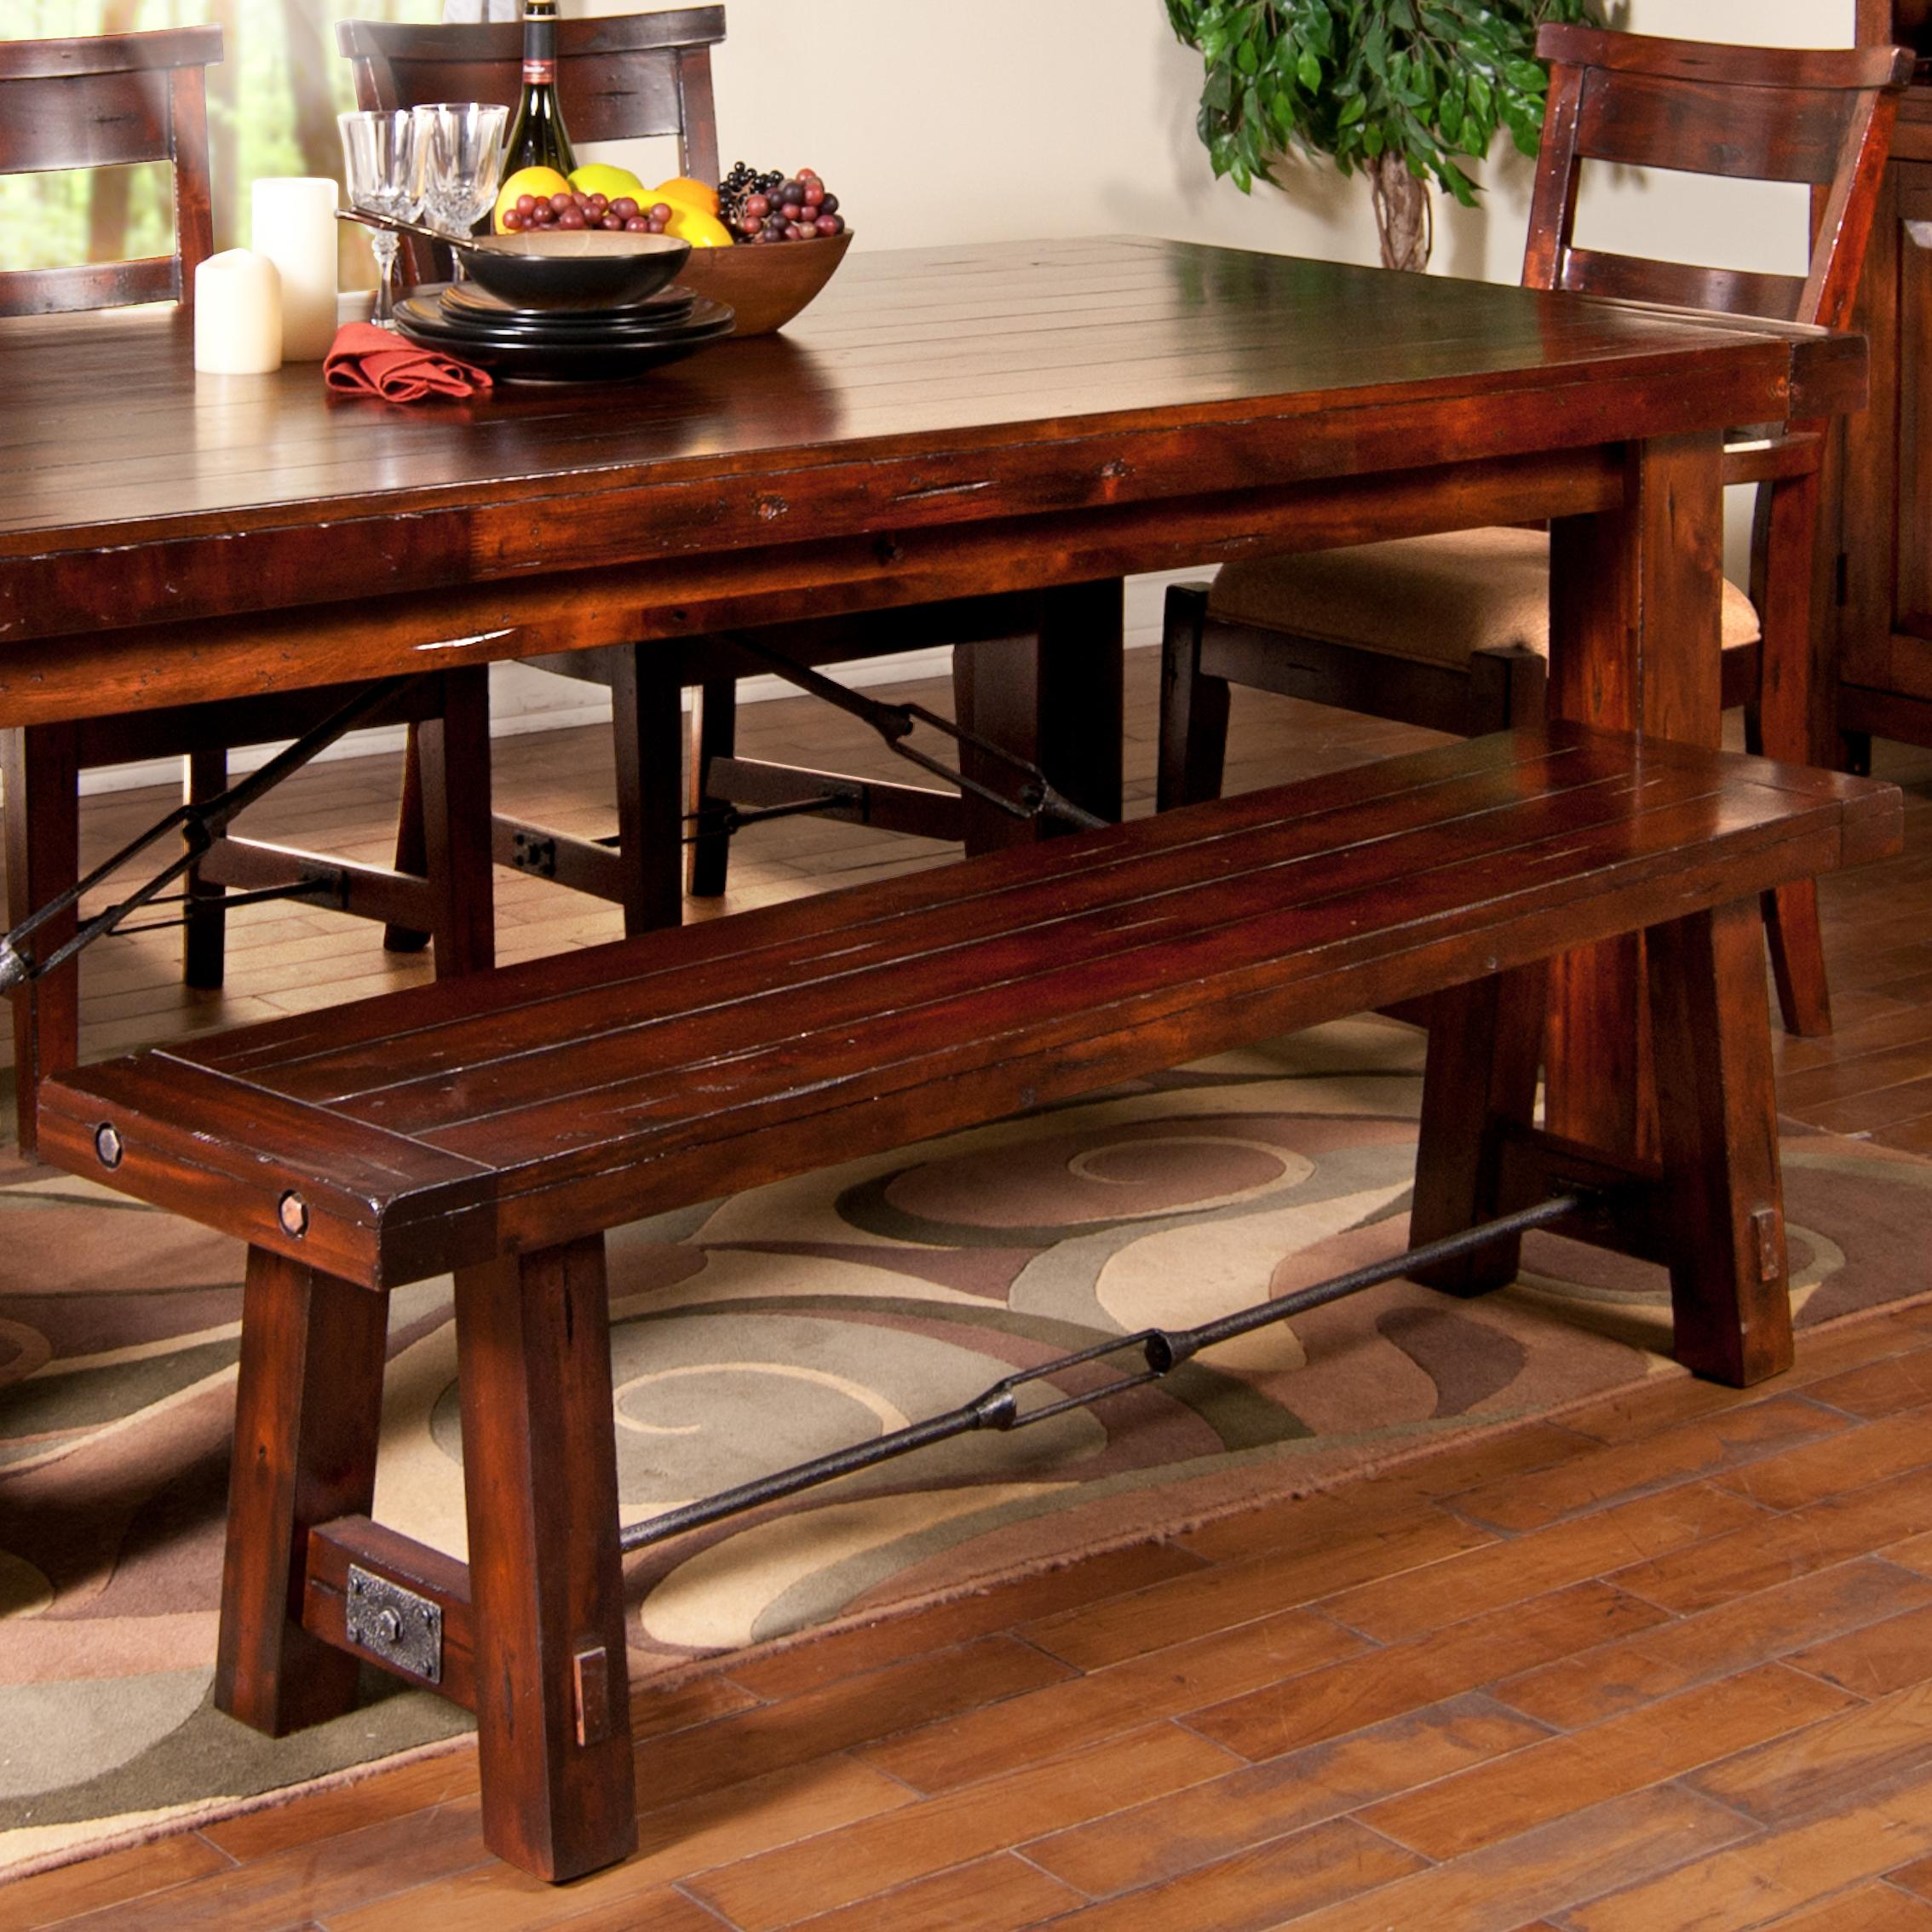 Kitchen Tables With Benches And Chairs Table Wood: Sunny Designs Vineyard 1615RM Dining Bench With Wood Seat